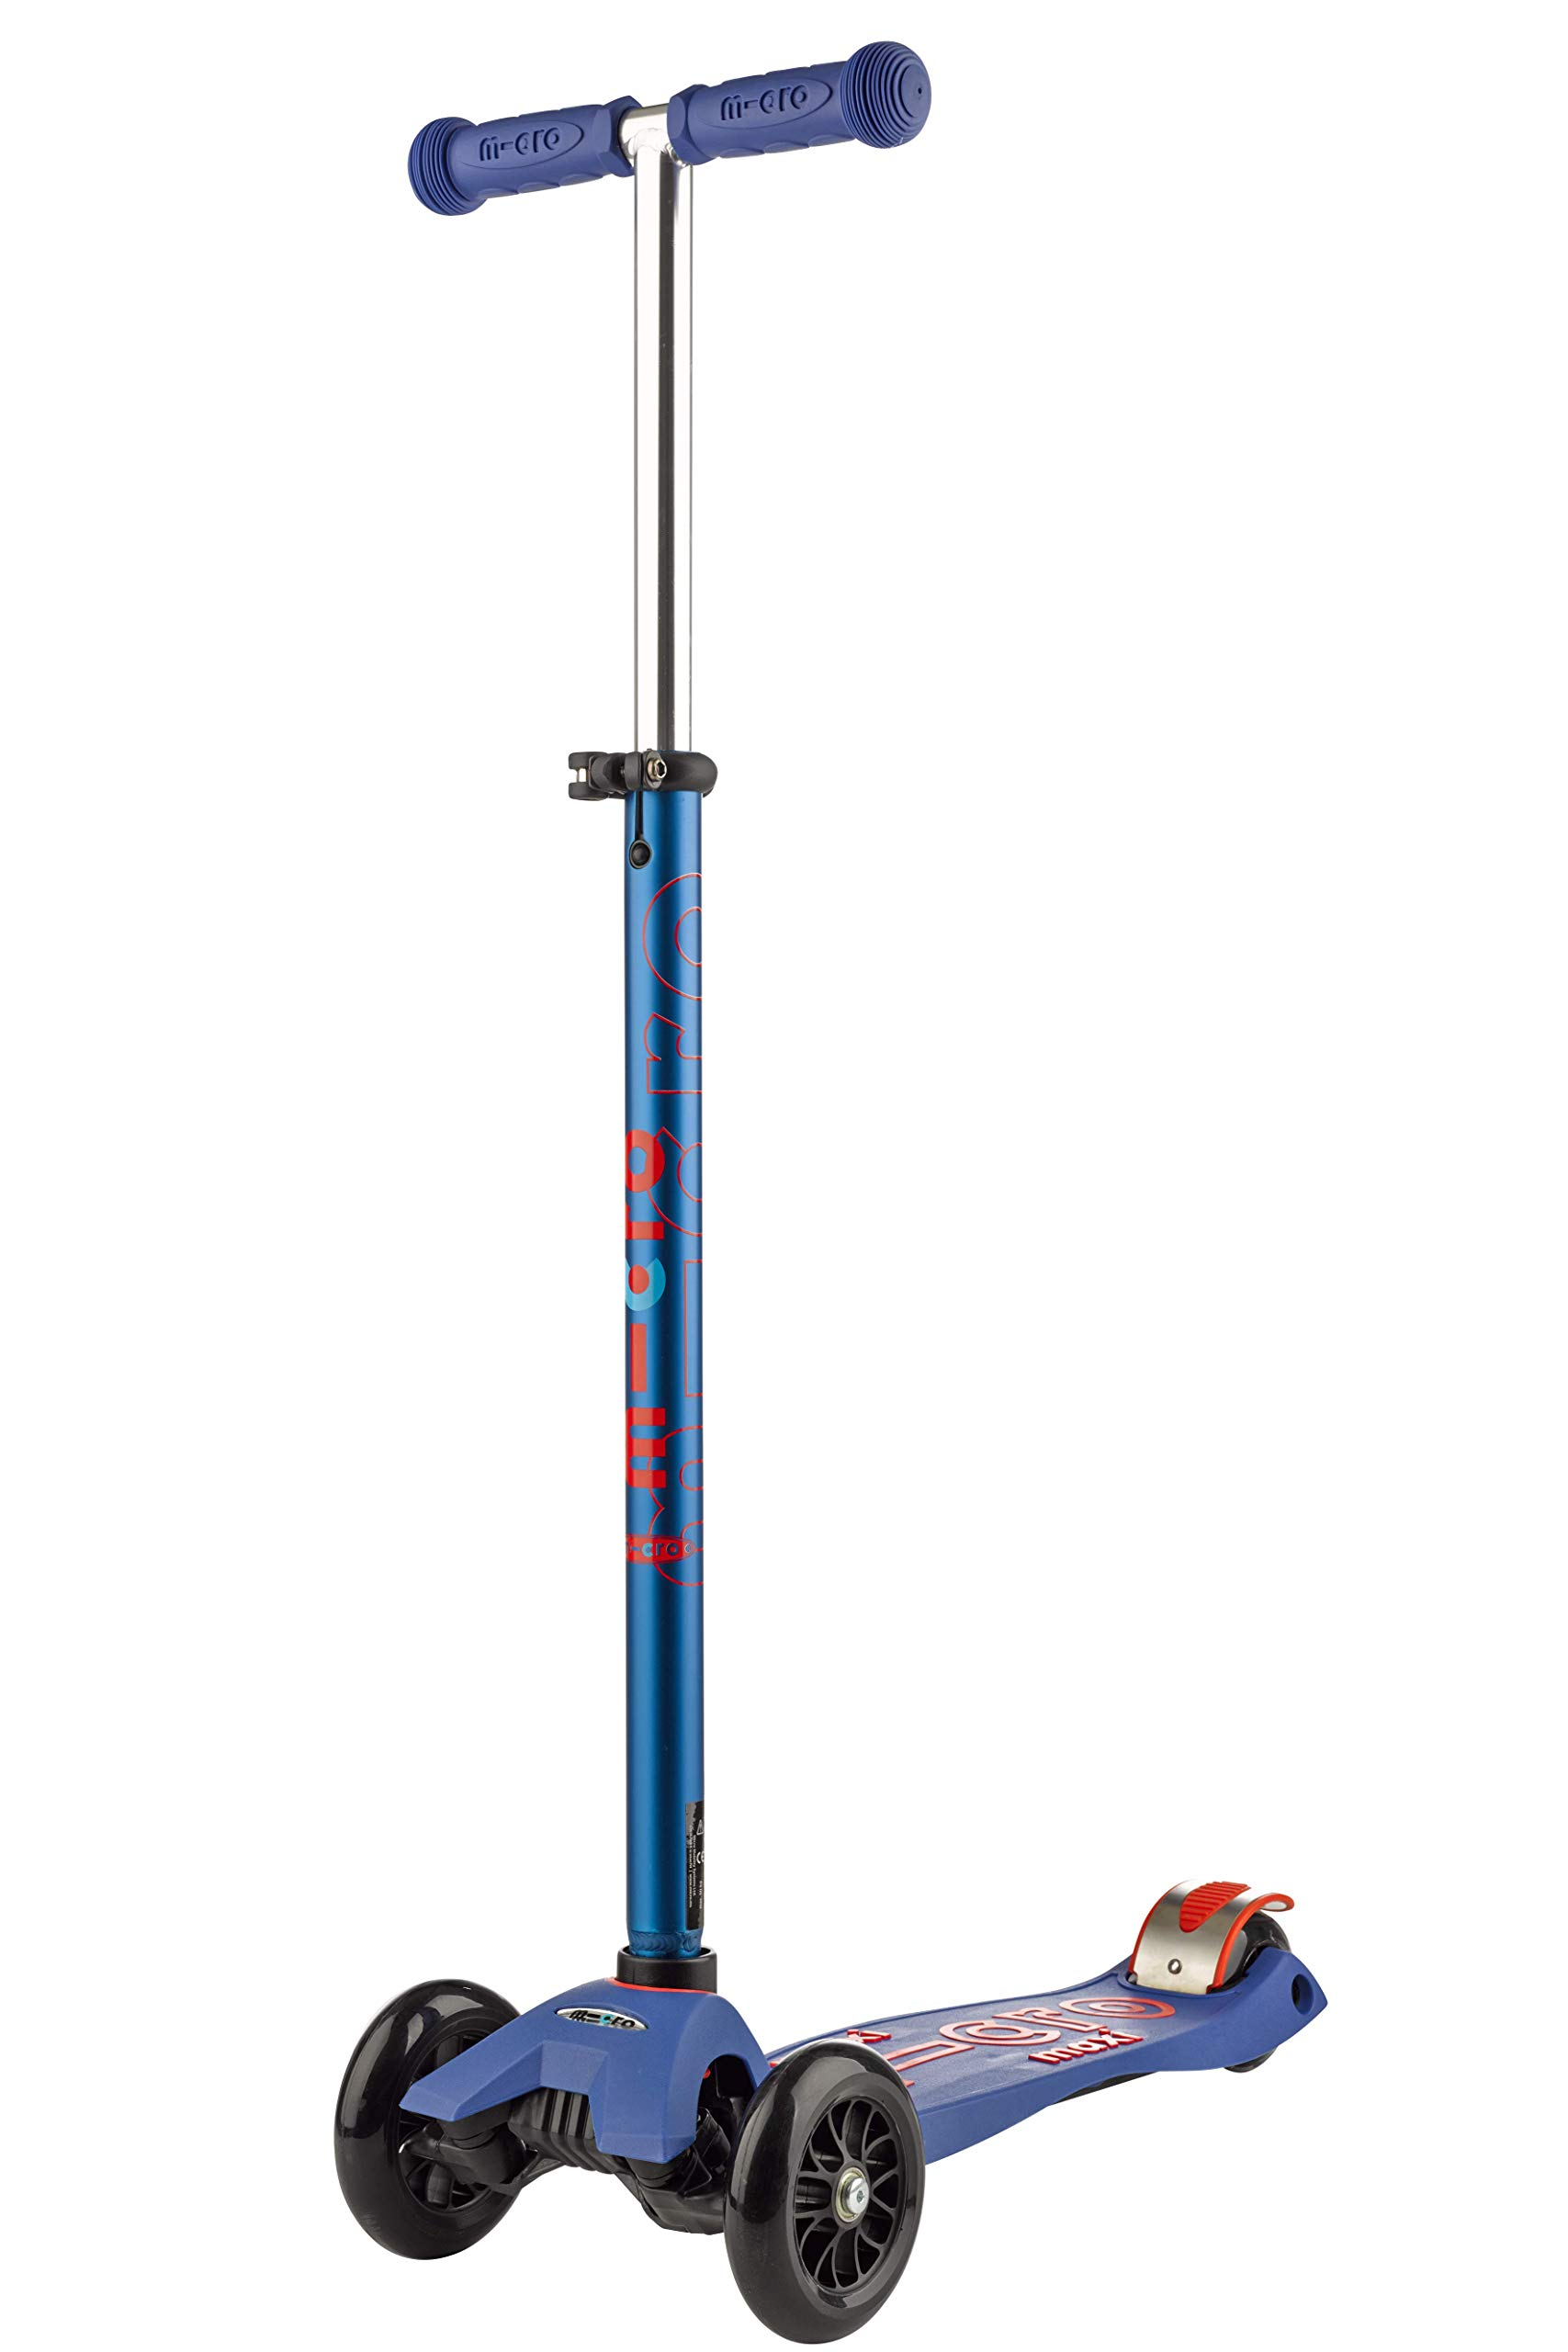 Micro Kickboard - Maxi Deluxe 3-Wheeled, Lean-to-Steer, Swiss-Designed Micro Scooter for Kids, Ages 5-12 - Blue